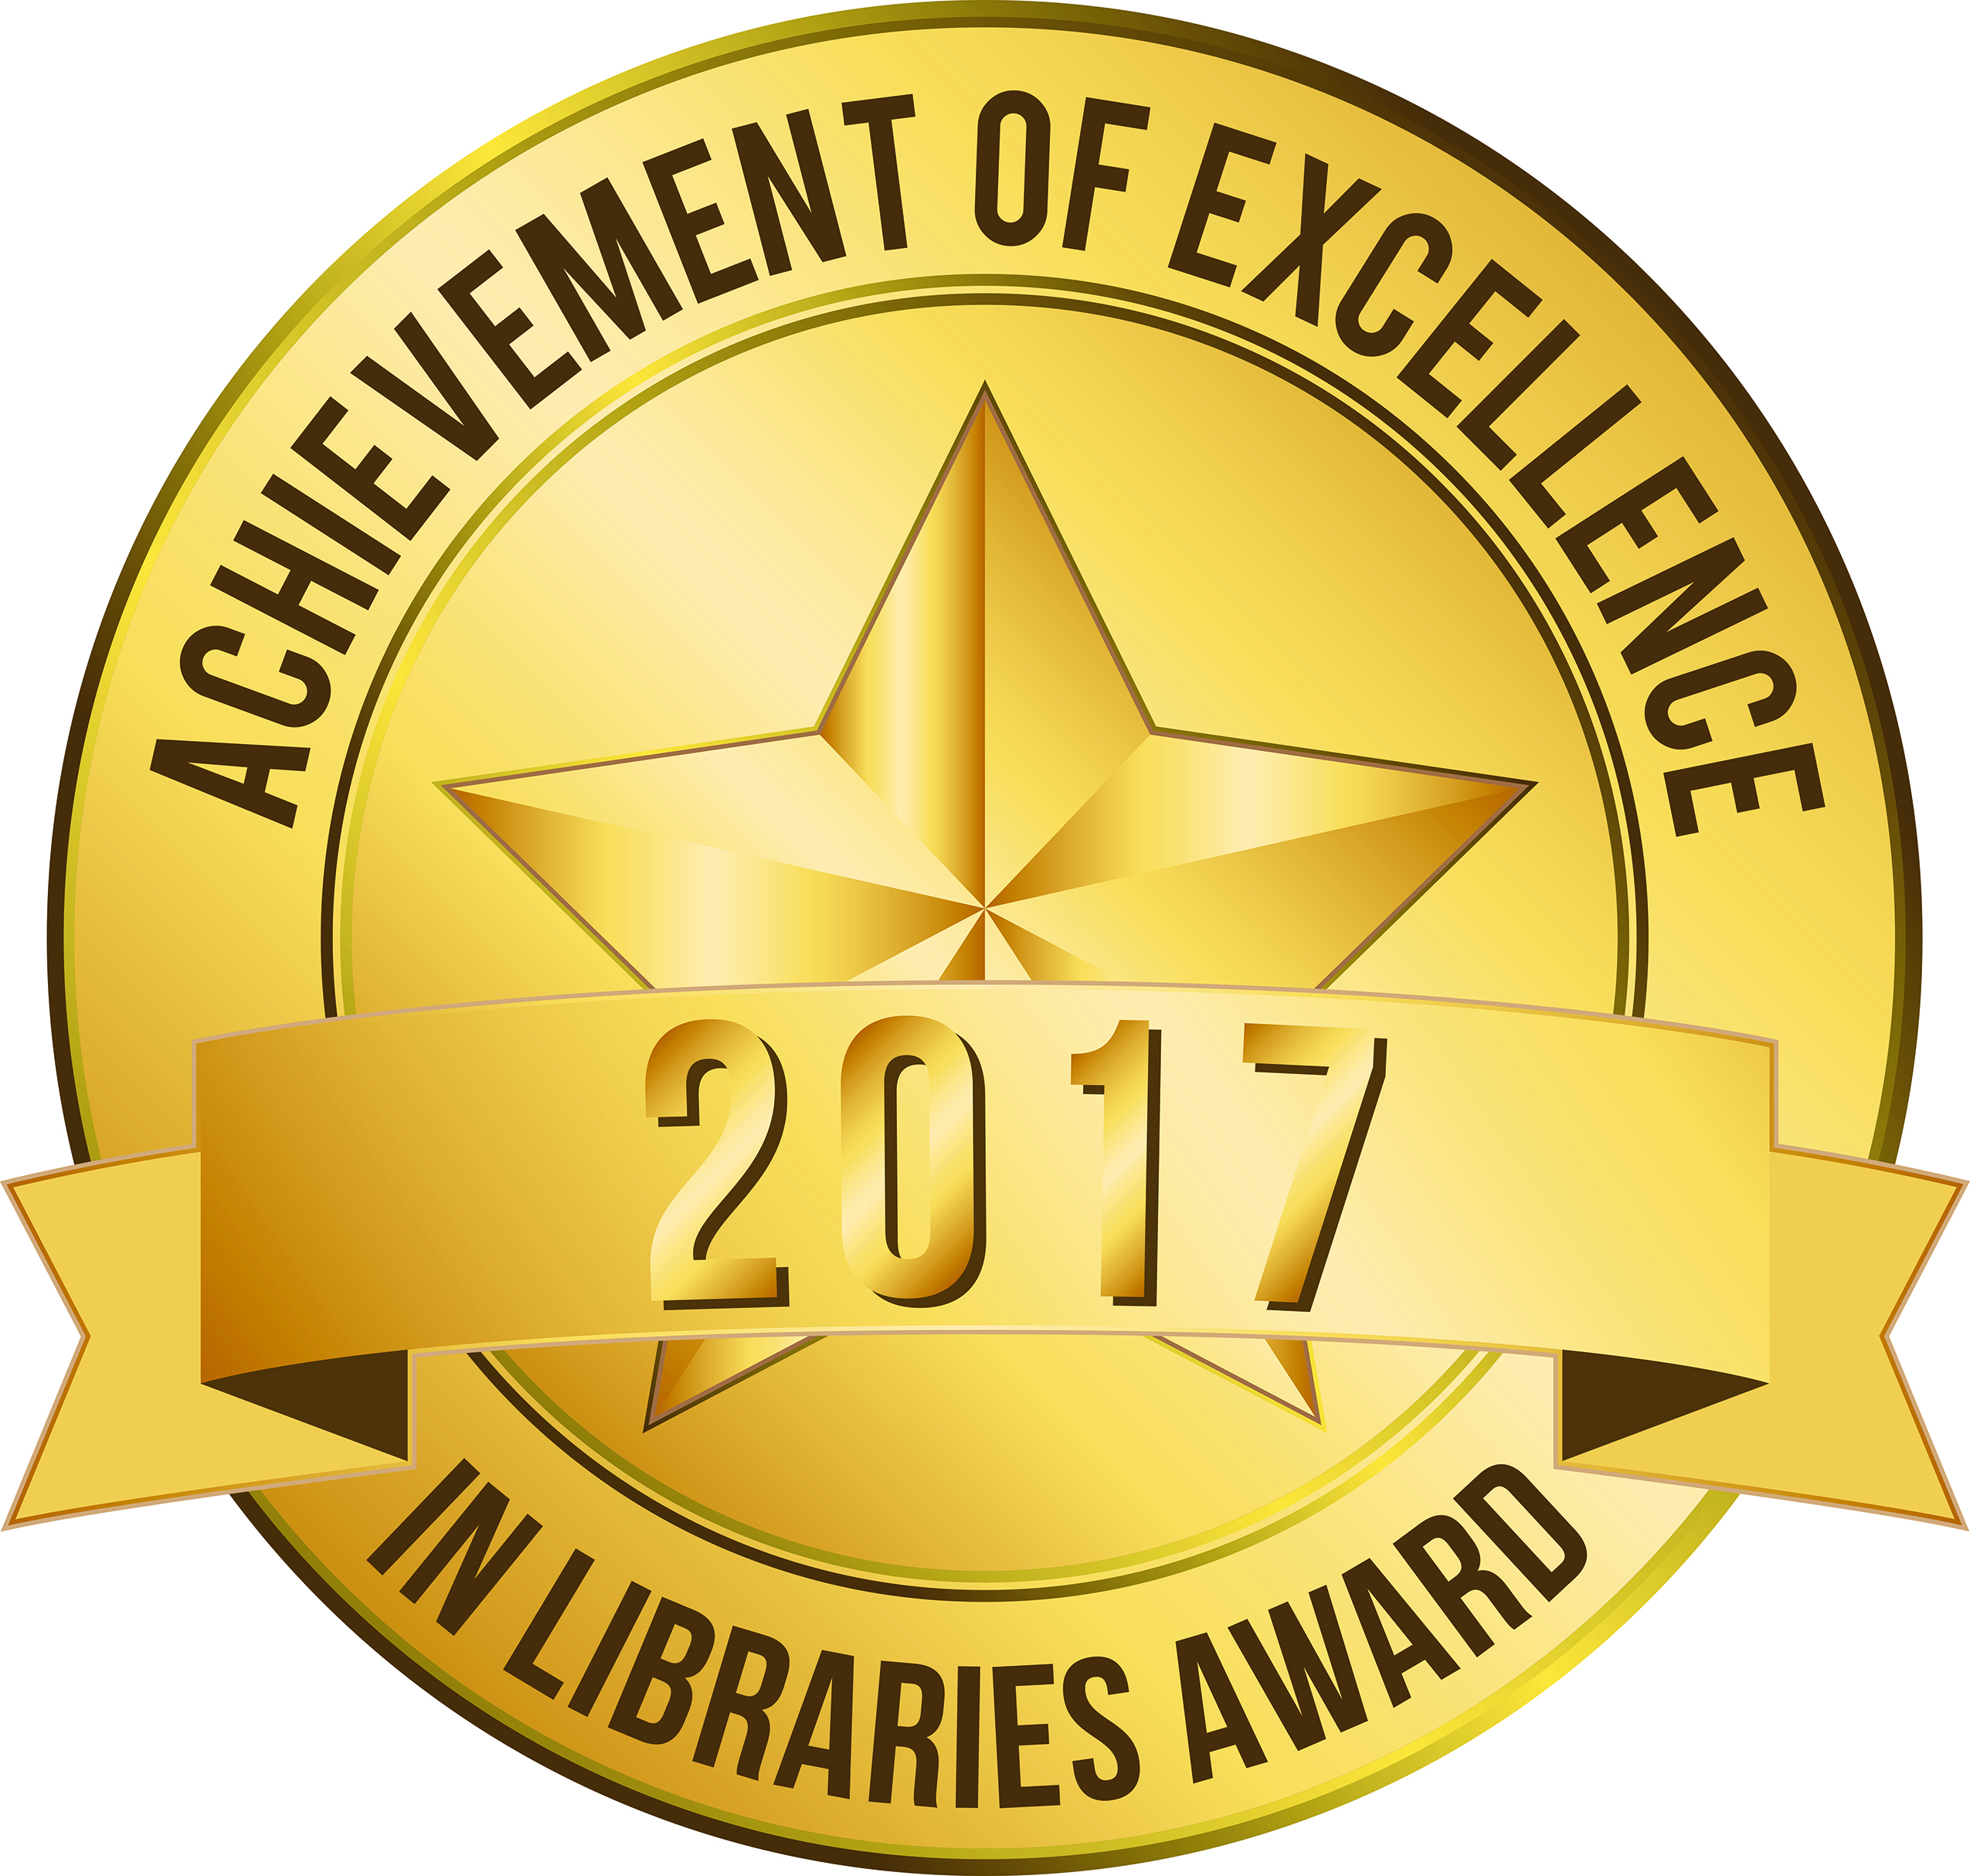 Arlington Public Library receives Achievement of Library Excellence Award